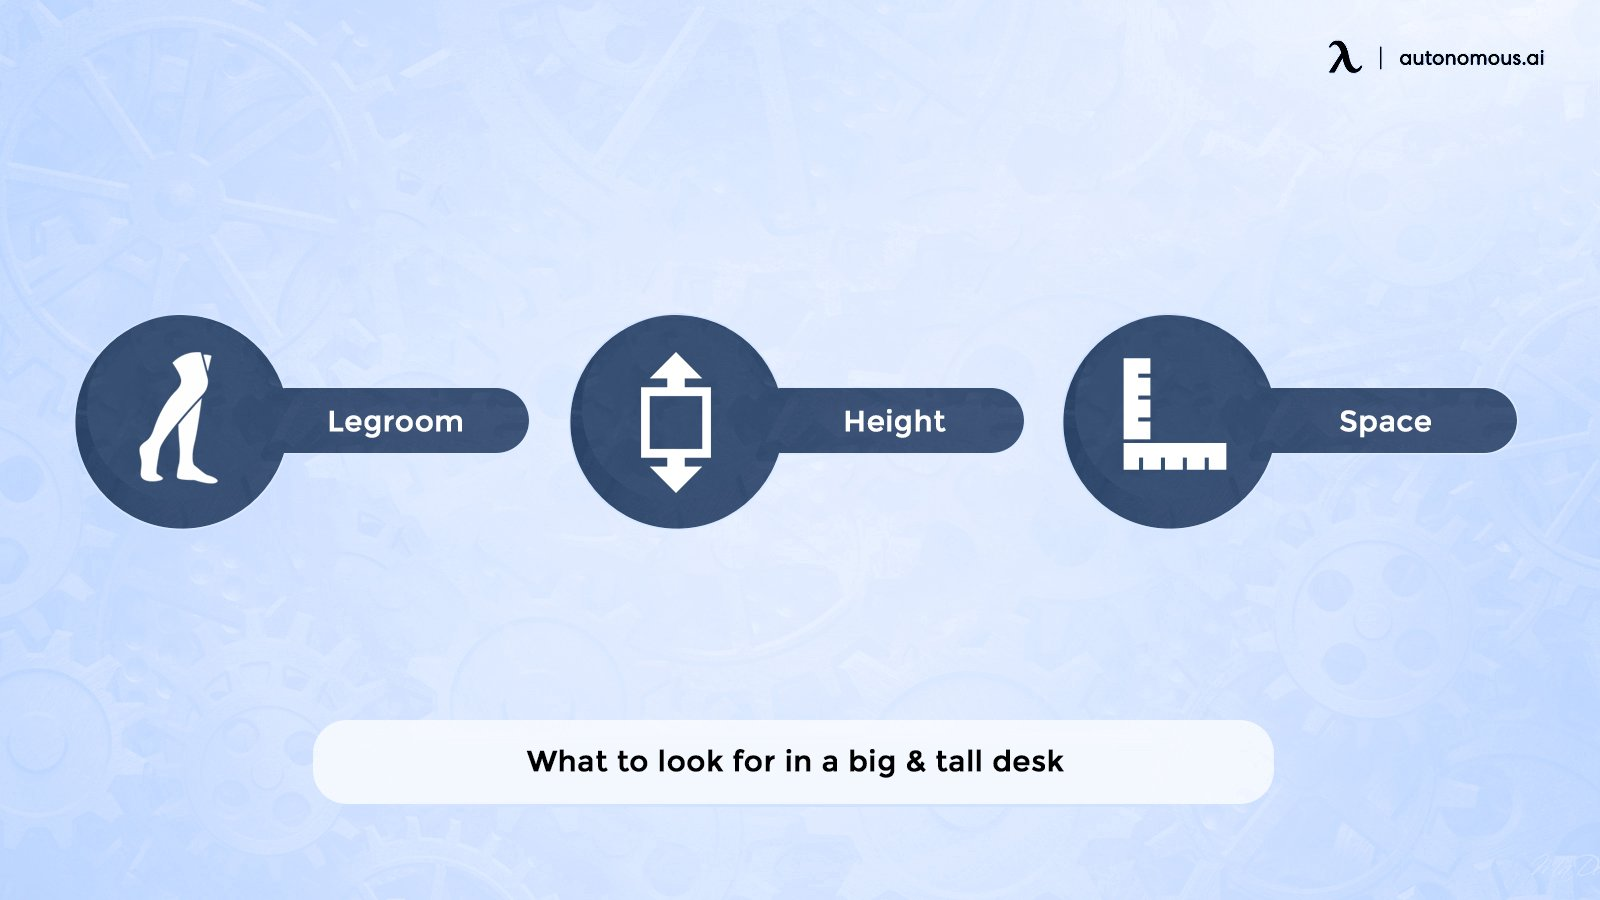 What to look for in a big & tall desk